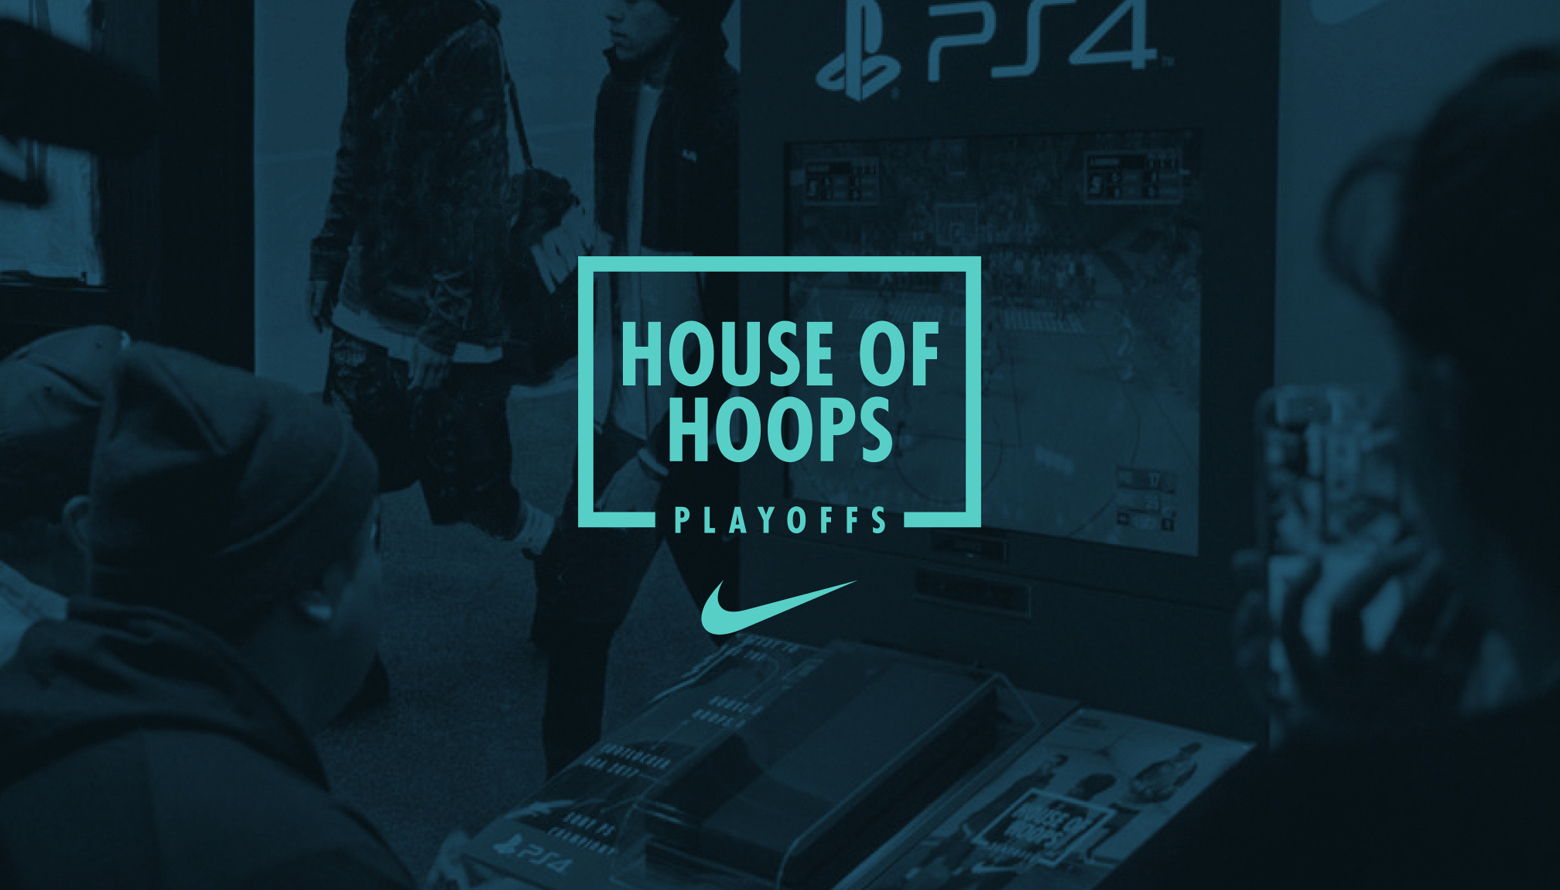 OLLIECO_House-of-Hoops-1_1560x1080